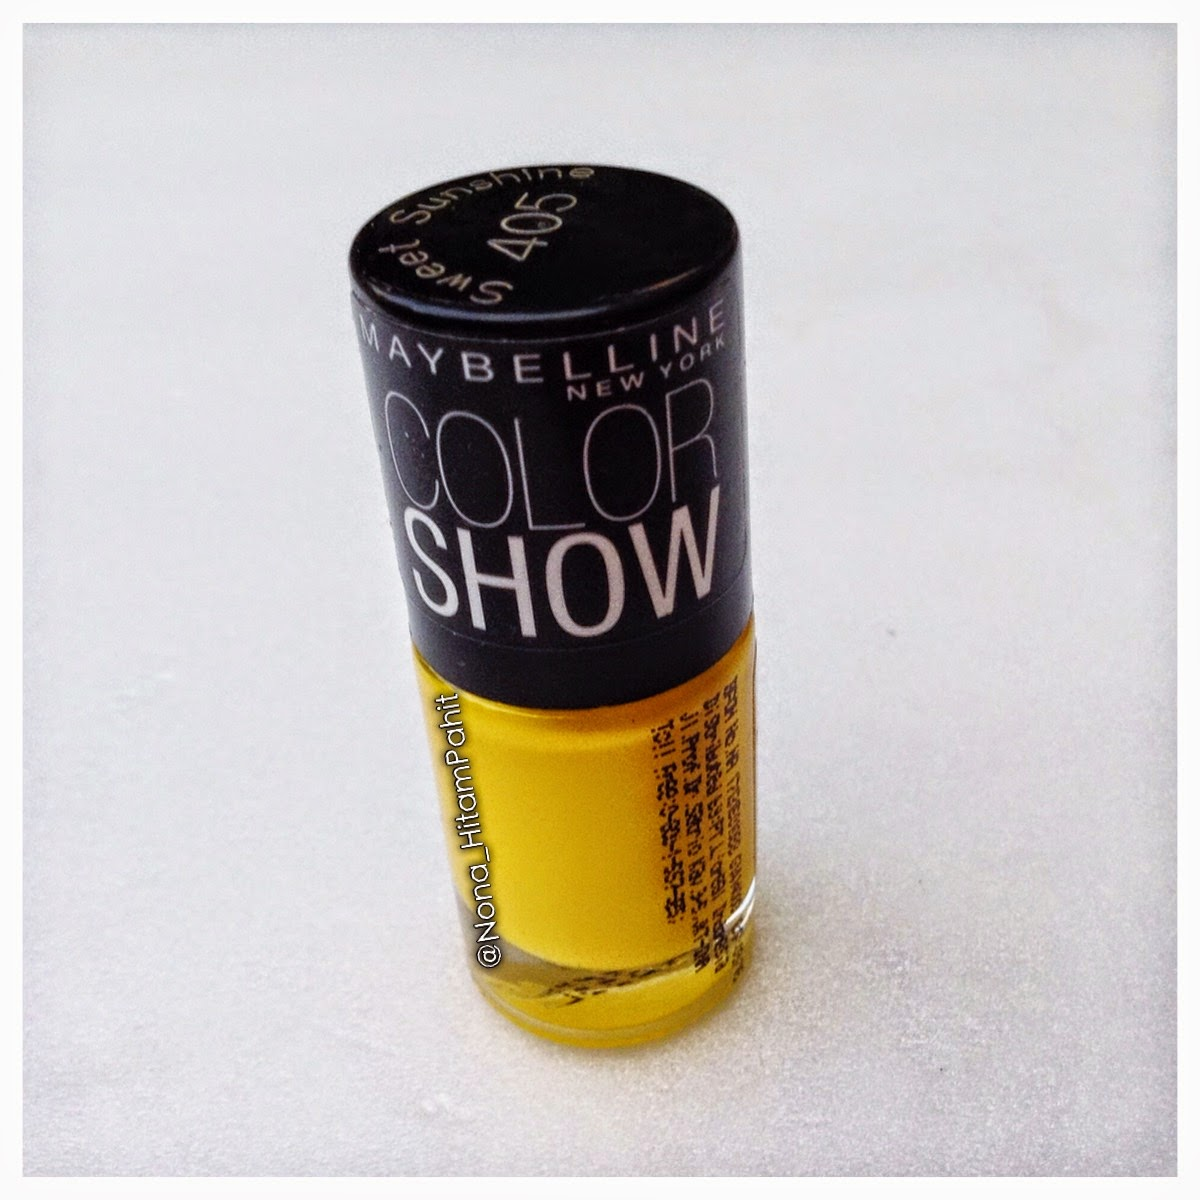 Maybelline Color Show Sweet sunshine, nail polish